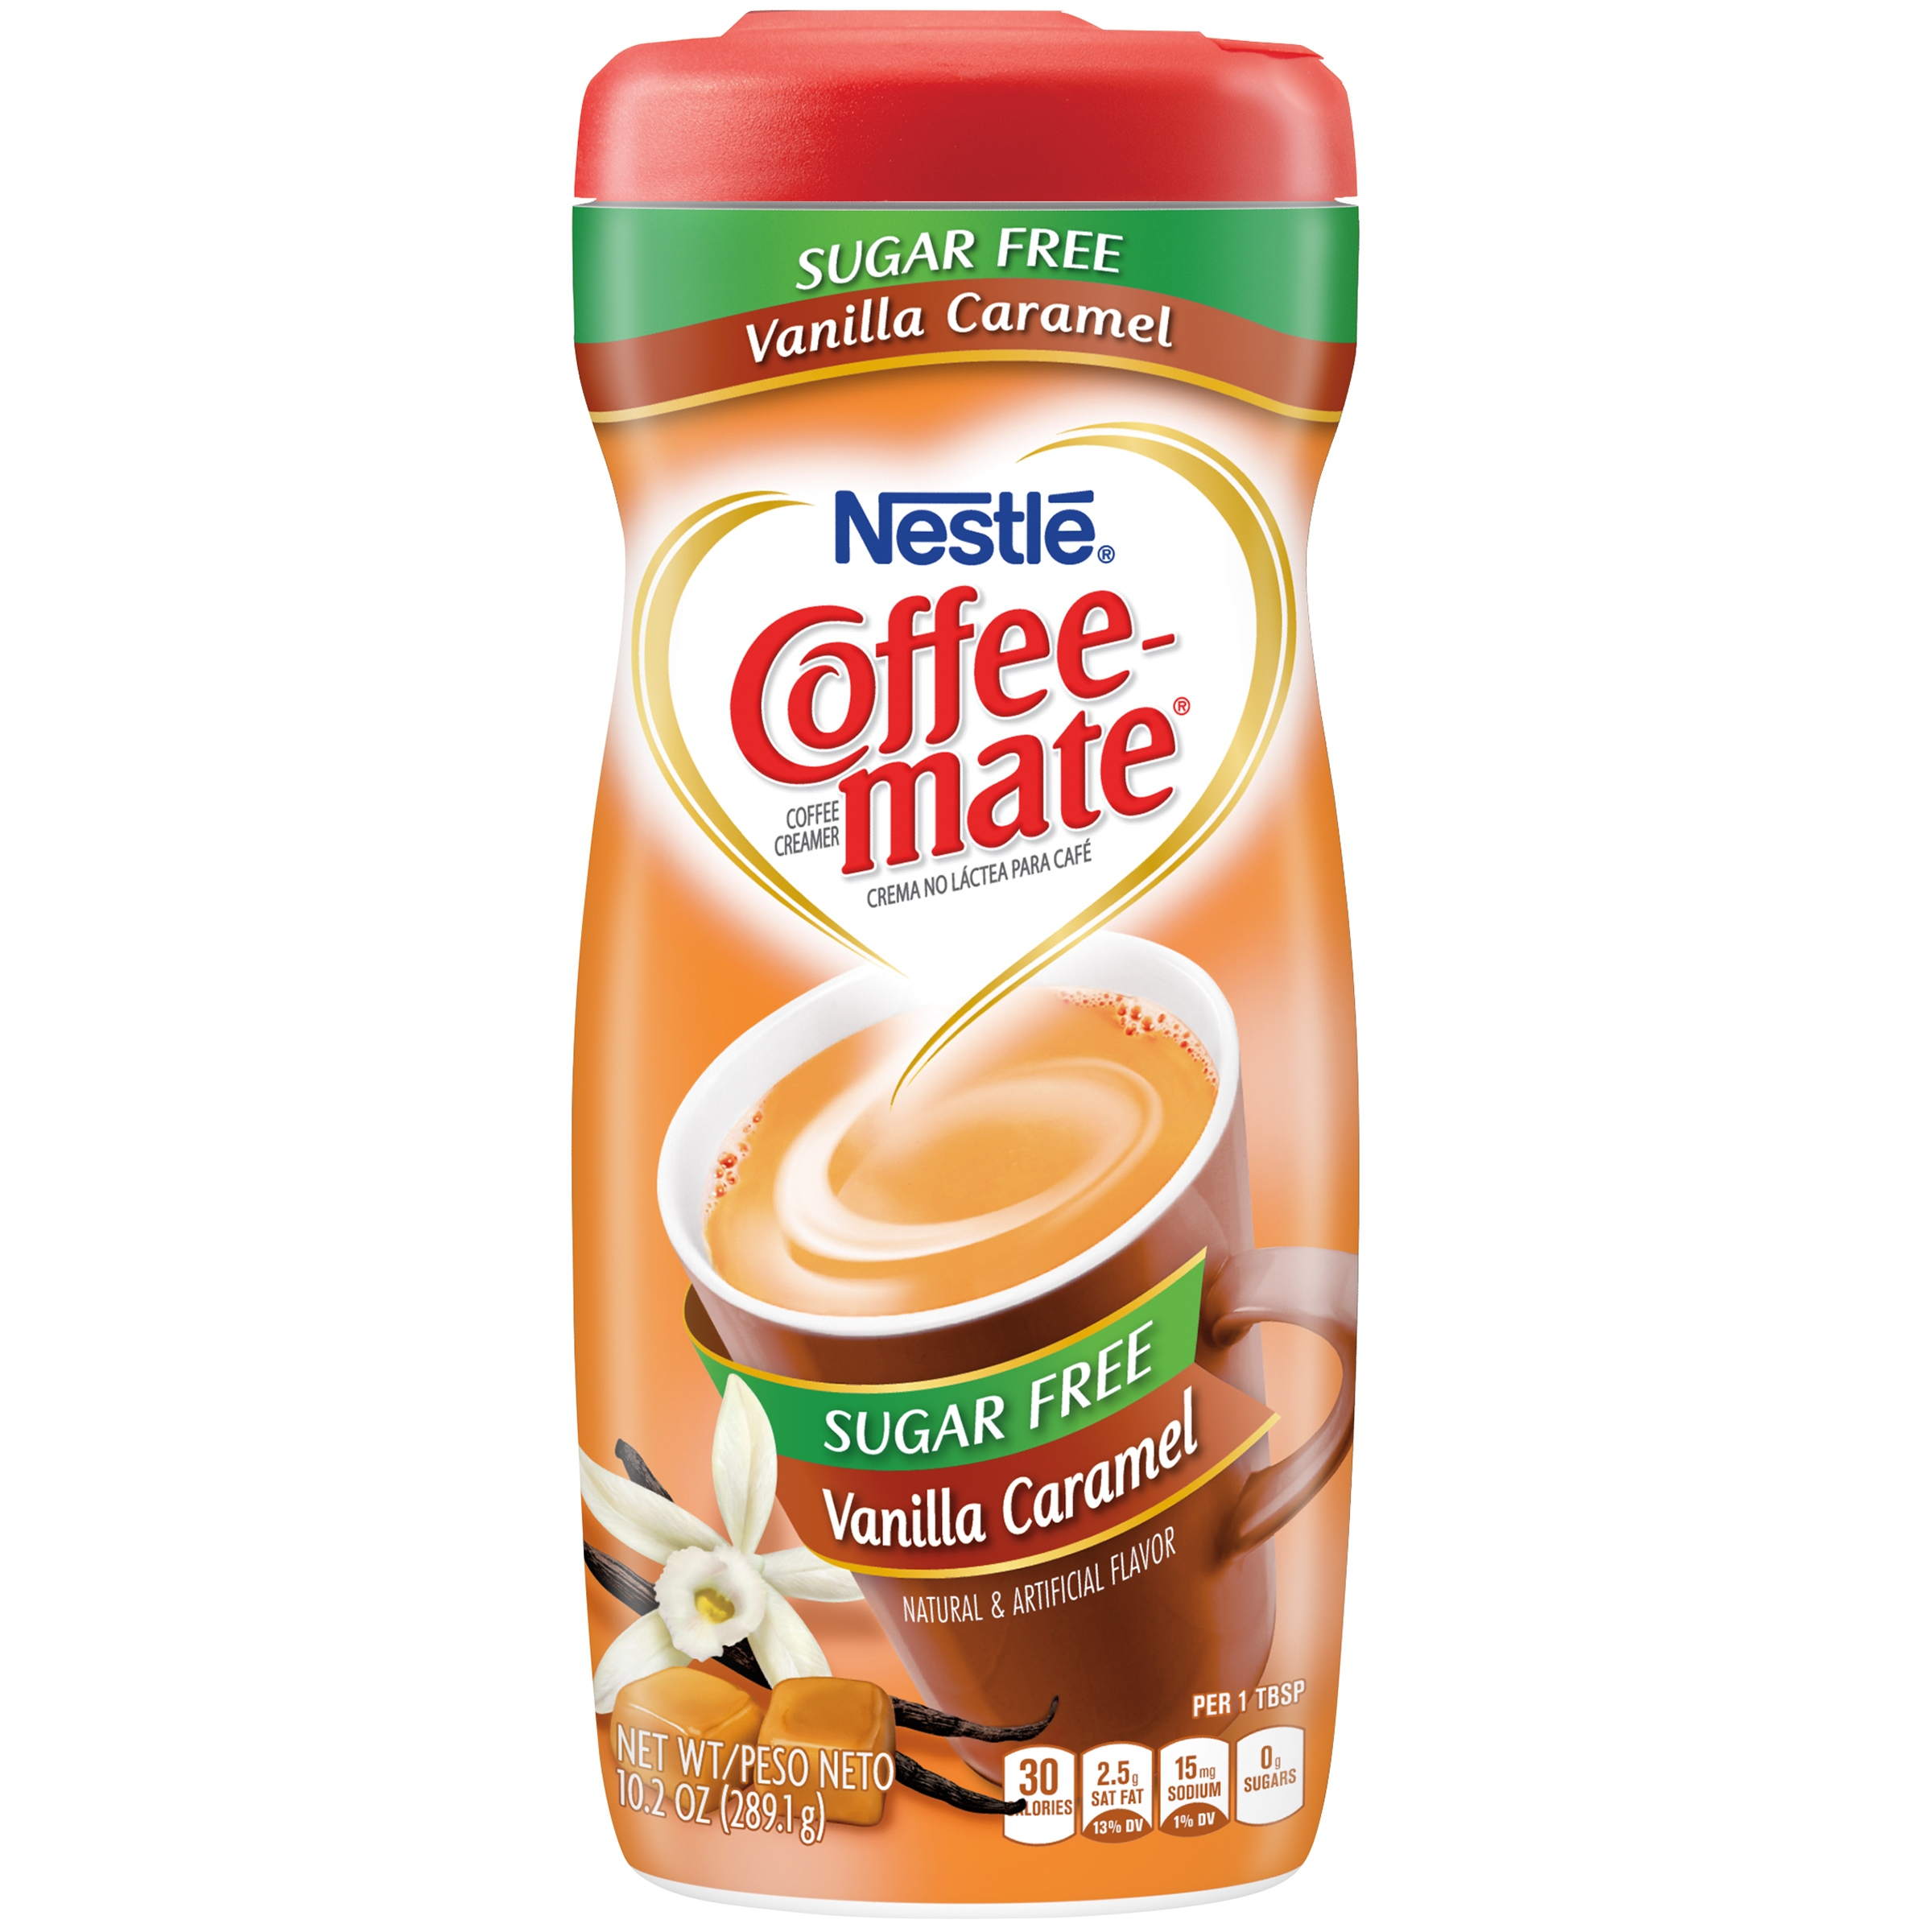 Nestle Coffeemate Sugar Free Vanilla Caramel Powder Coffee Creamer 10.2 oz. Canister